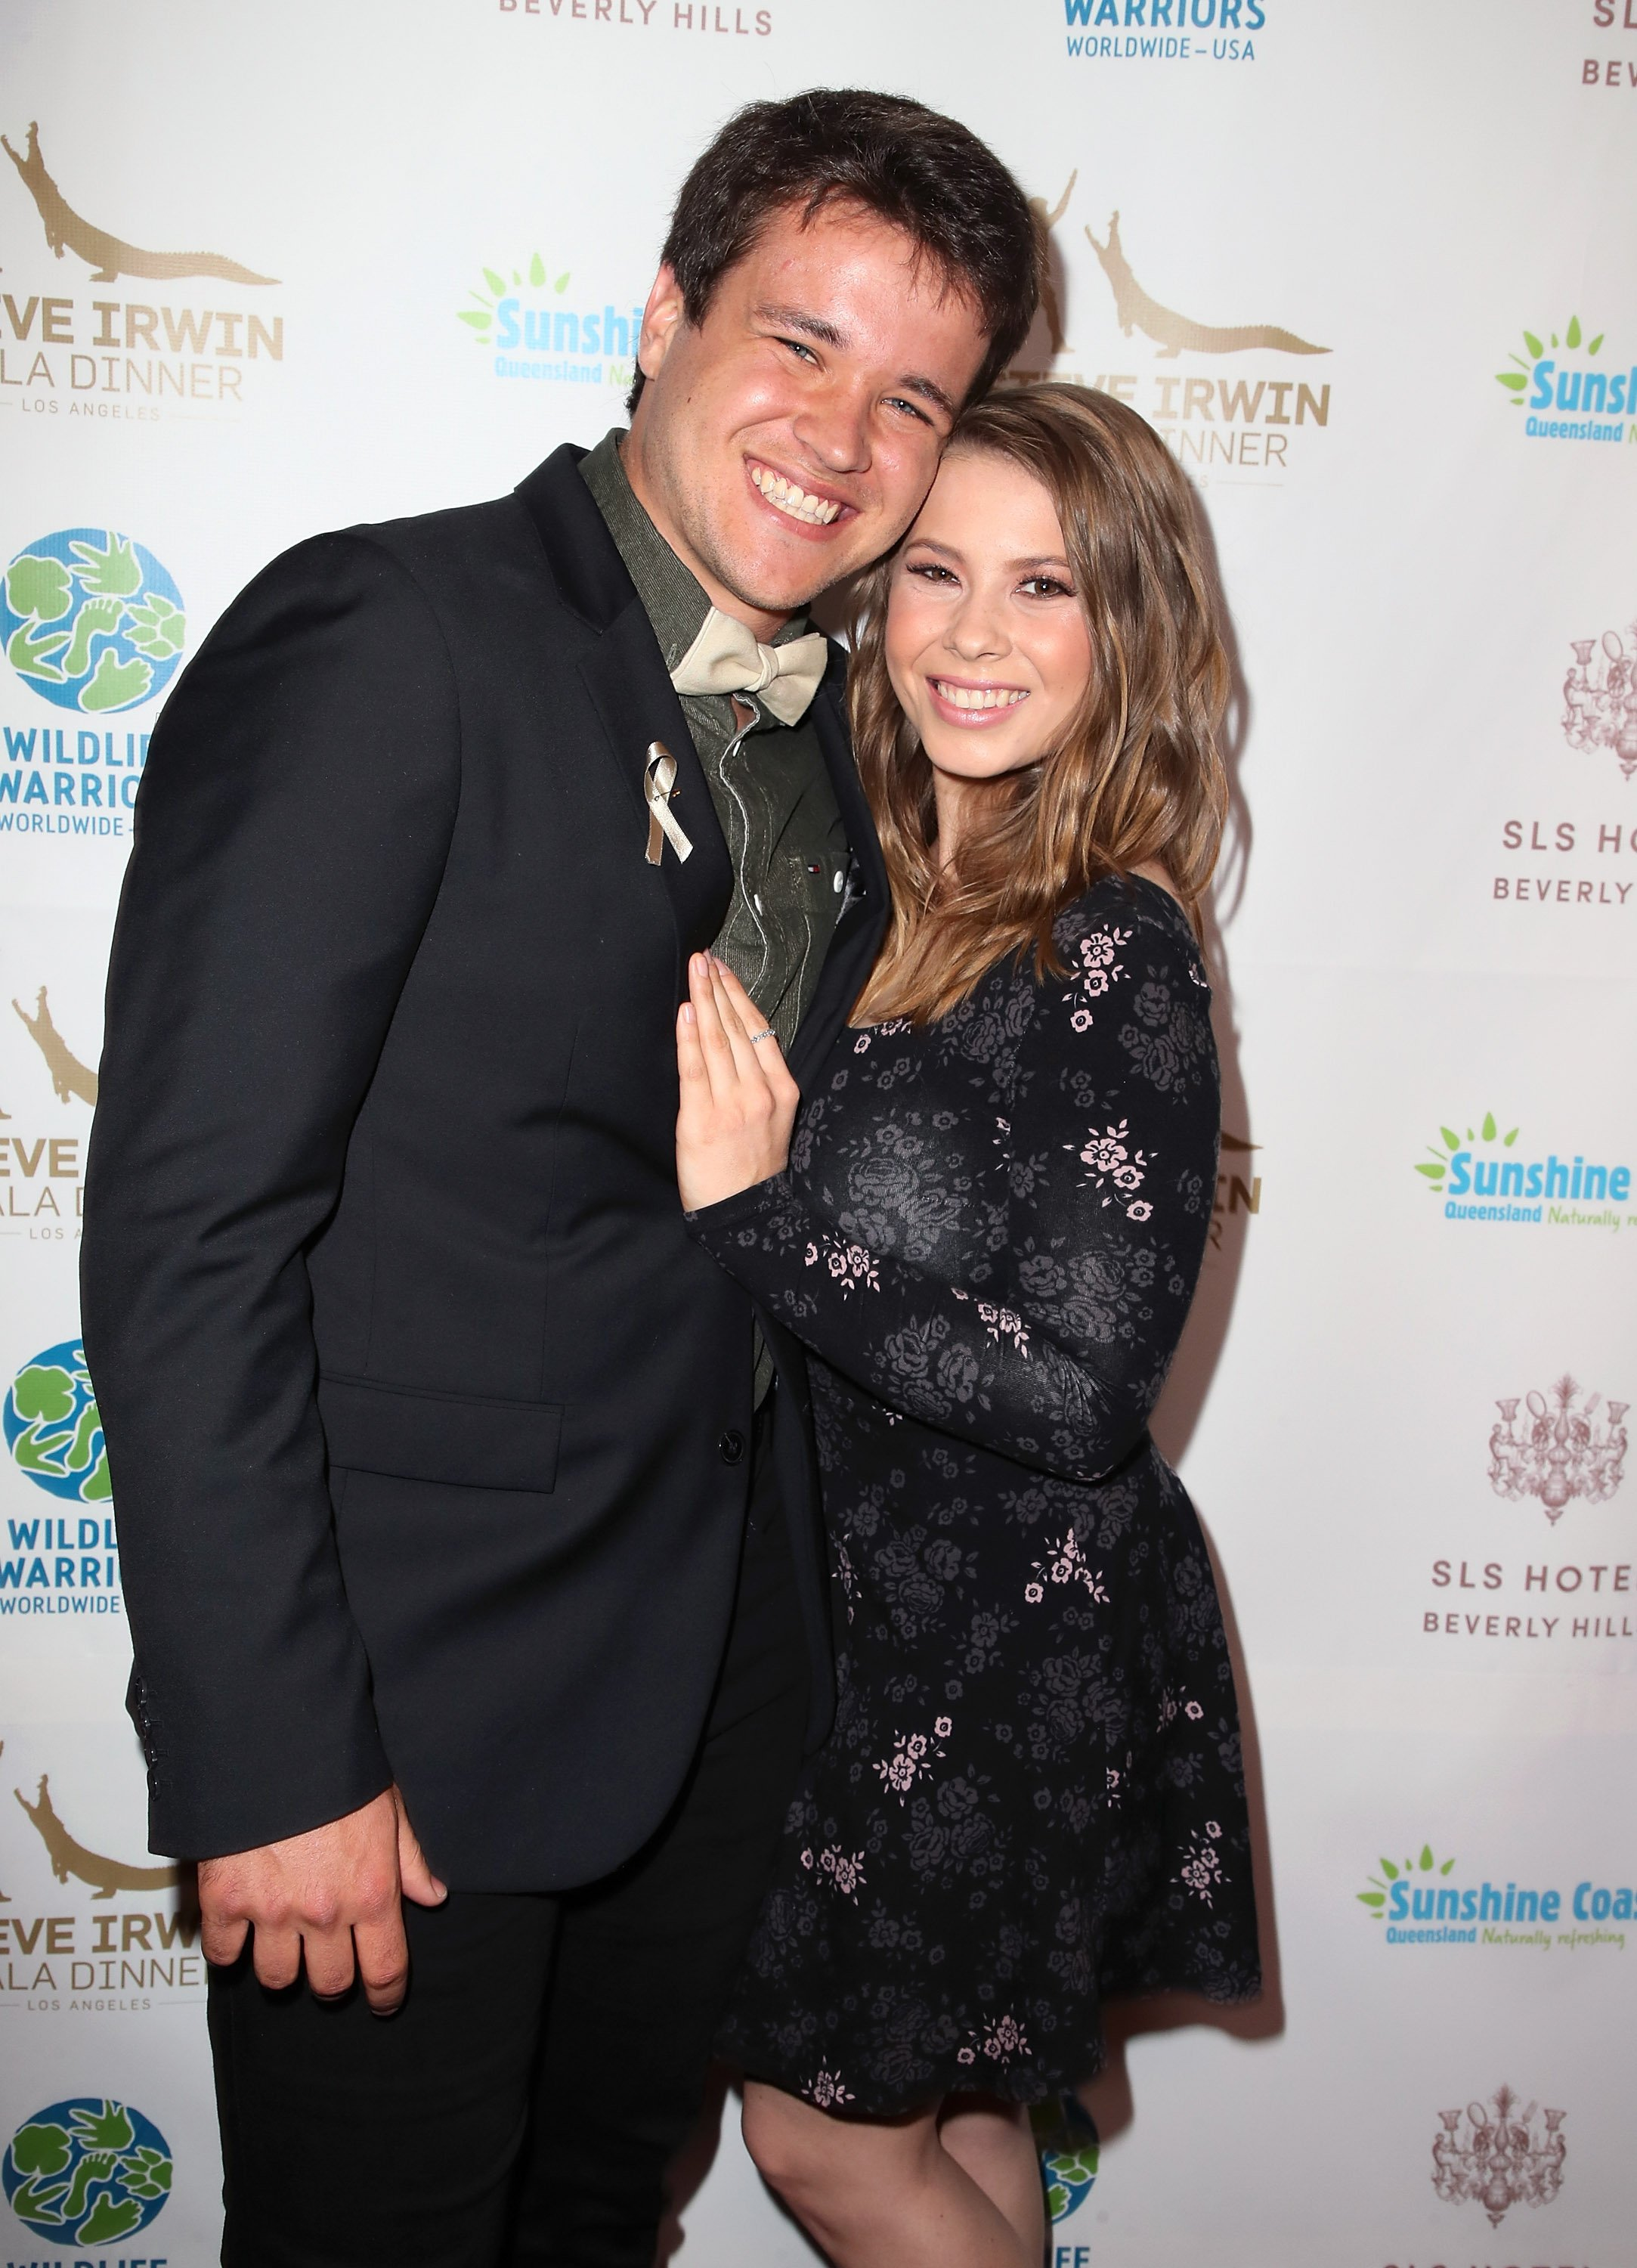 """Bindi Irwin and her husband, Chad Powell at the """"Steve Irwin Gala Dinner"""" in Los Angeles, 5 May, 2018. 